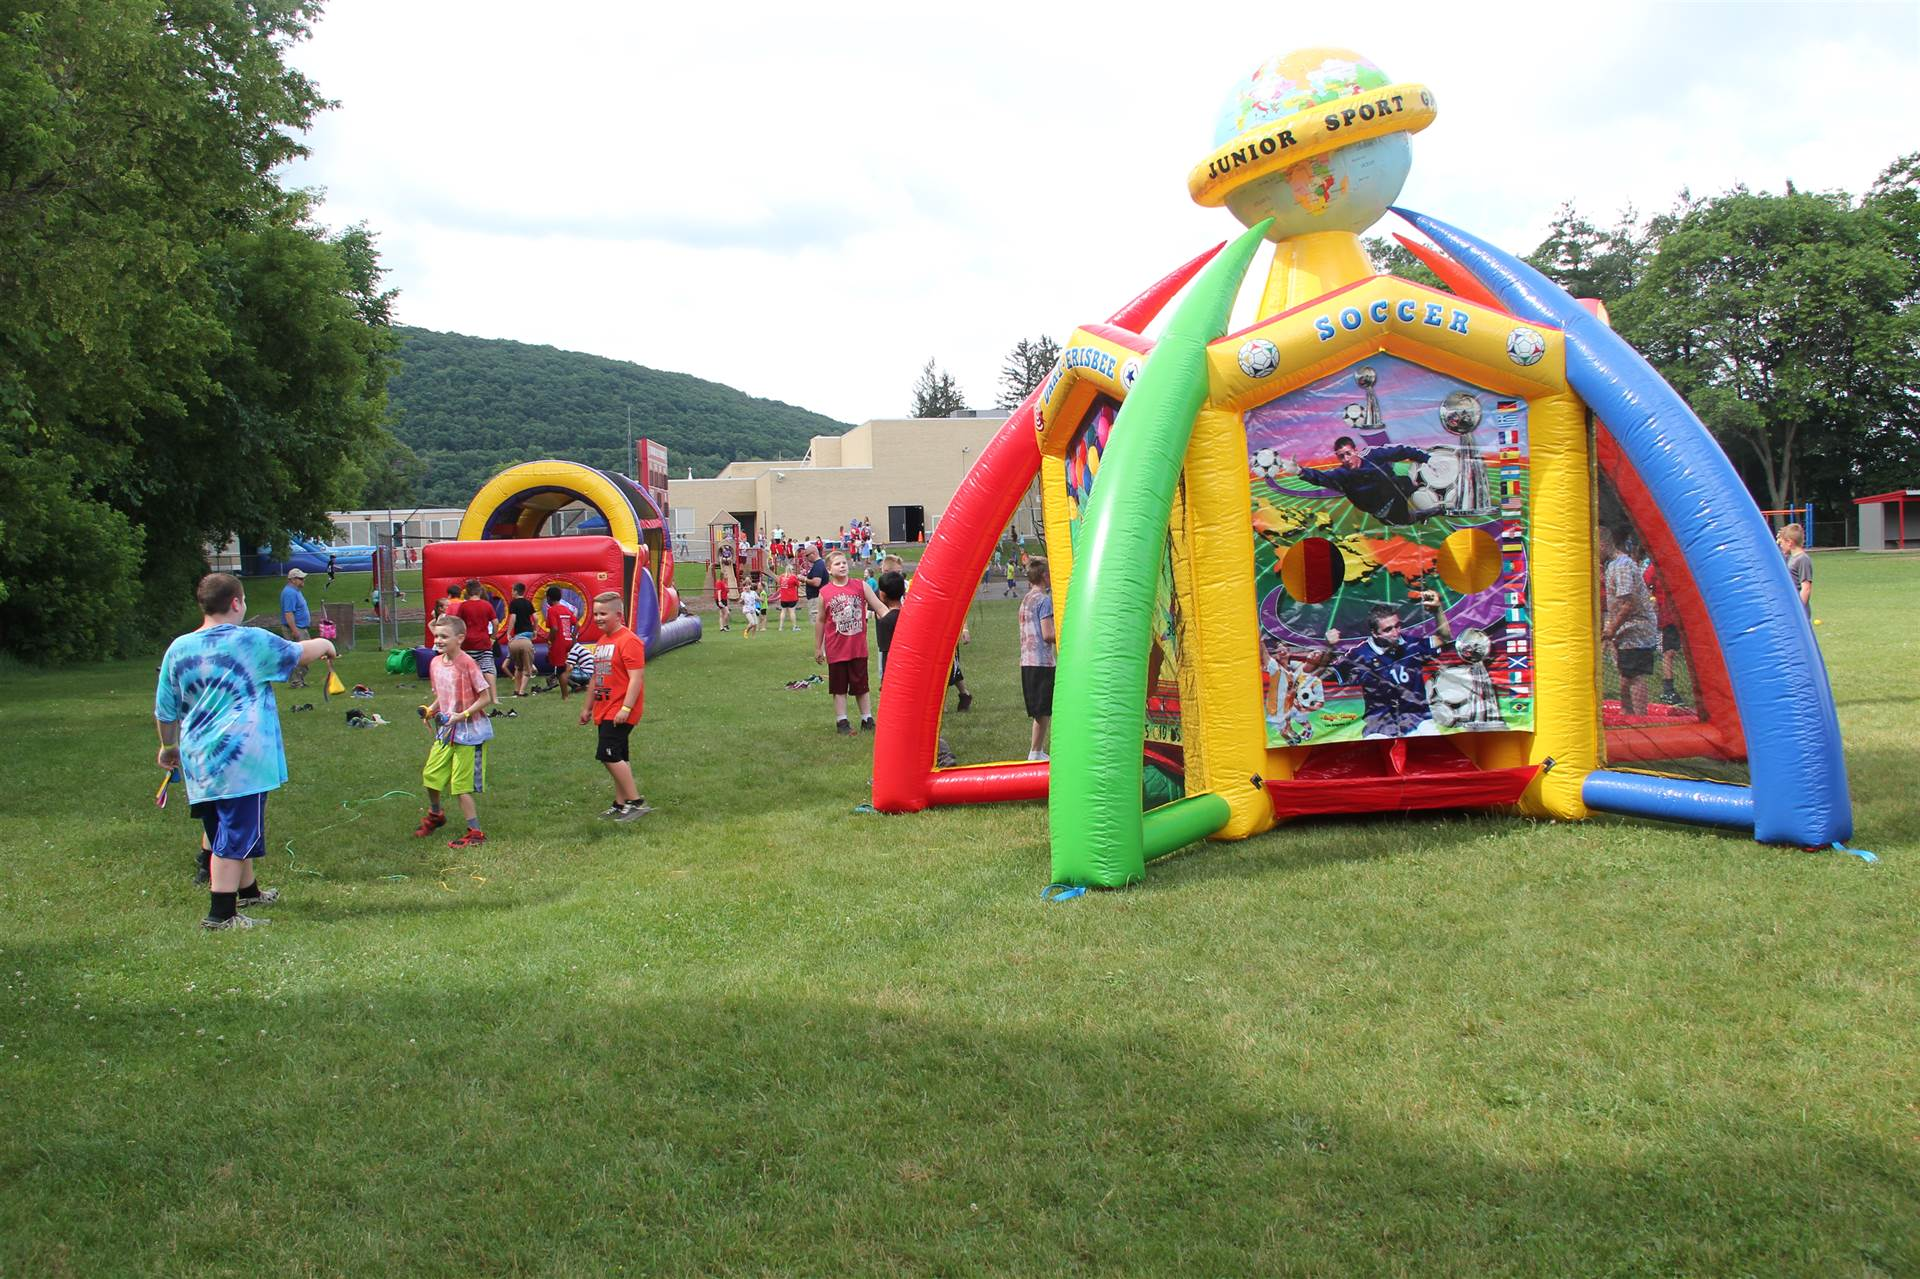 wide shot of inflatable games at carnival event